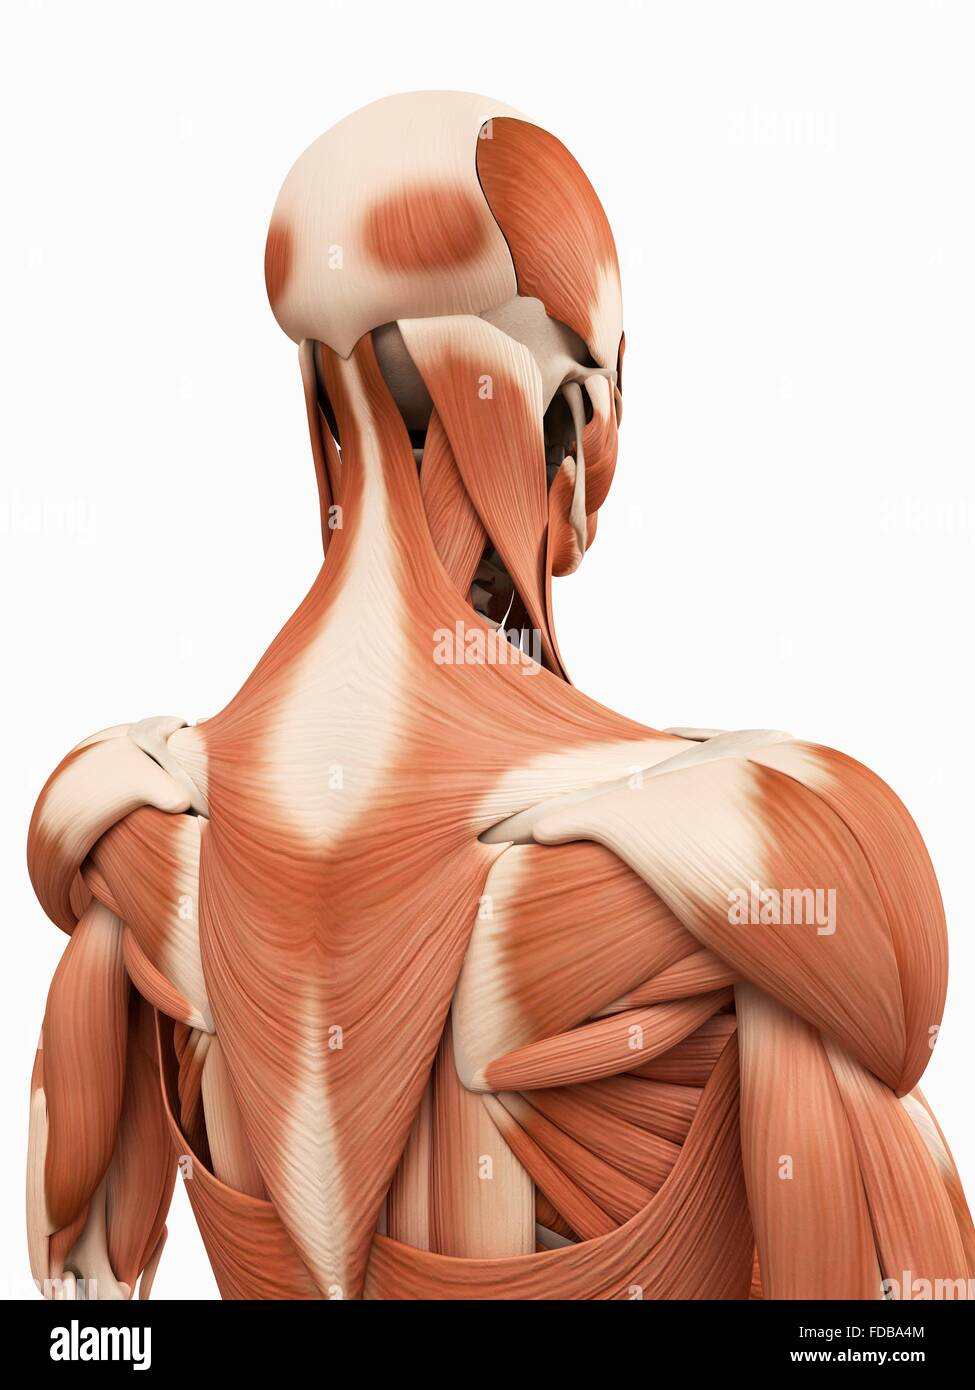 Muscular System Of The Upper Back Illustration Stock Photo